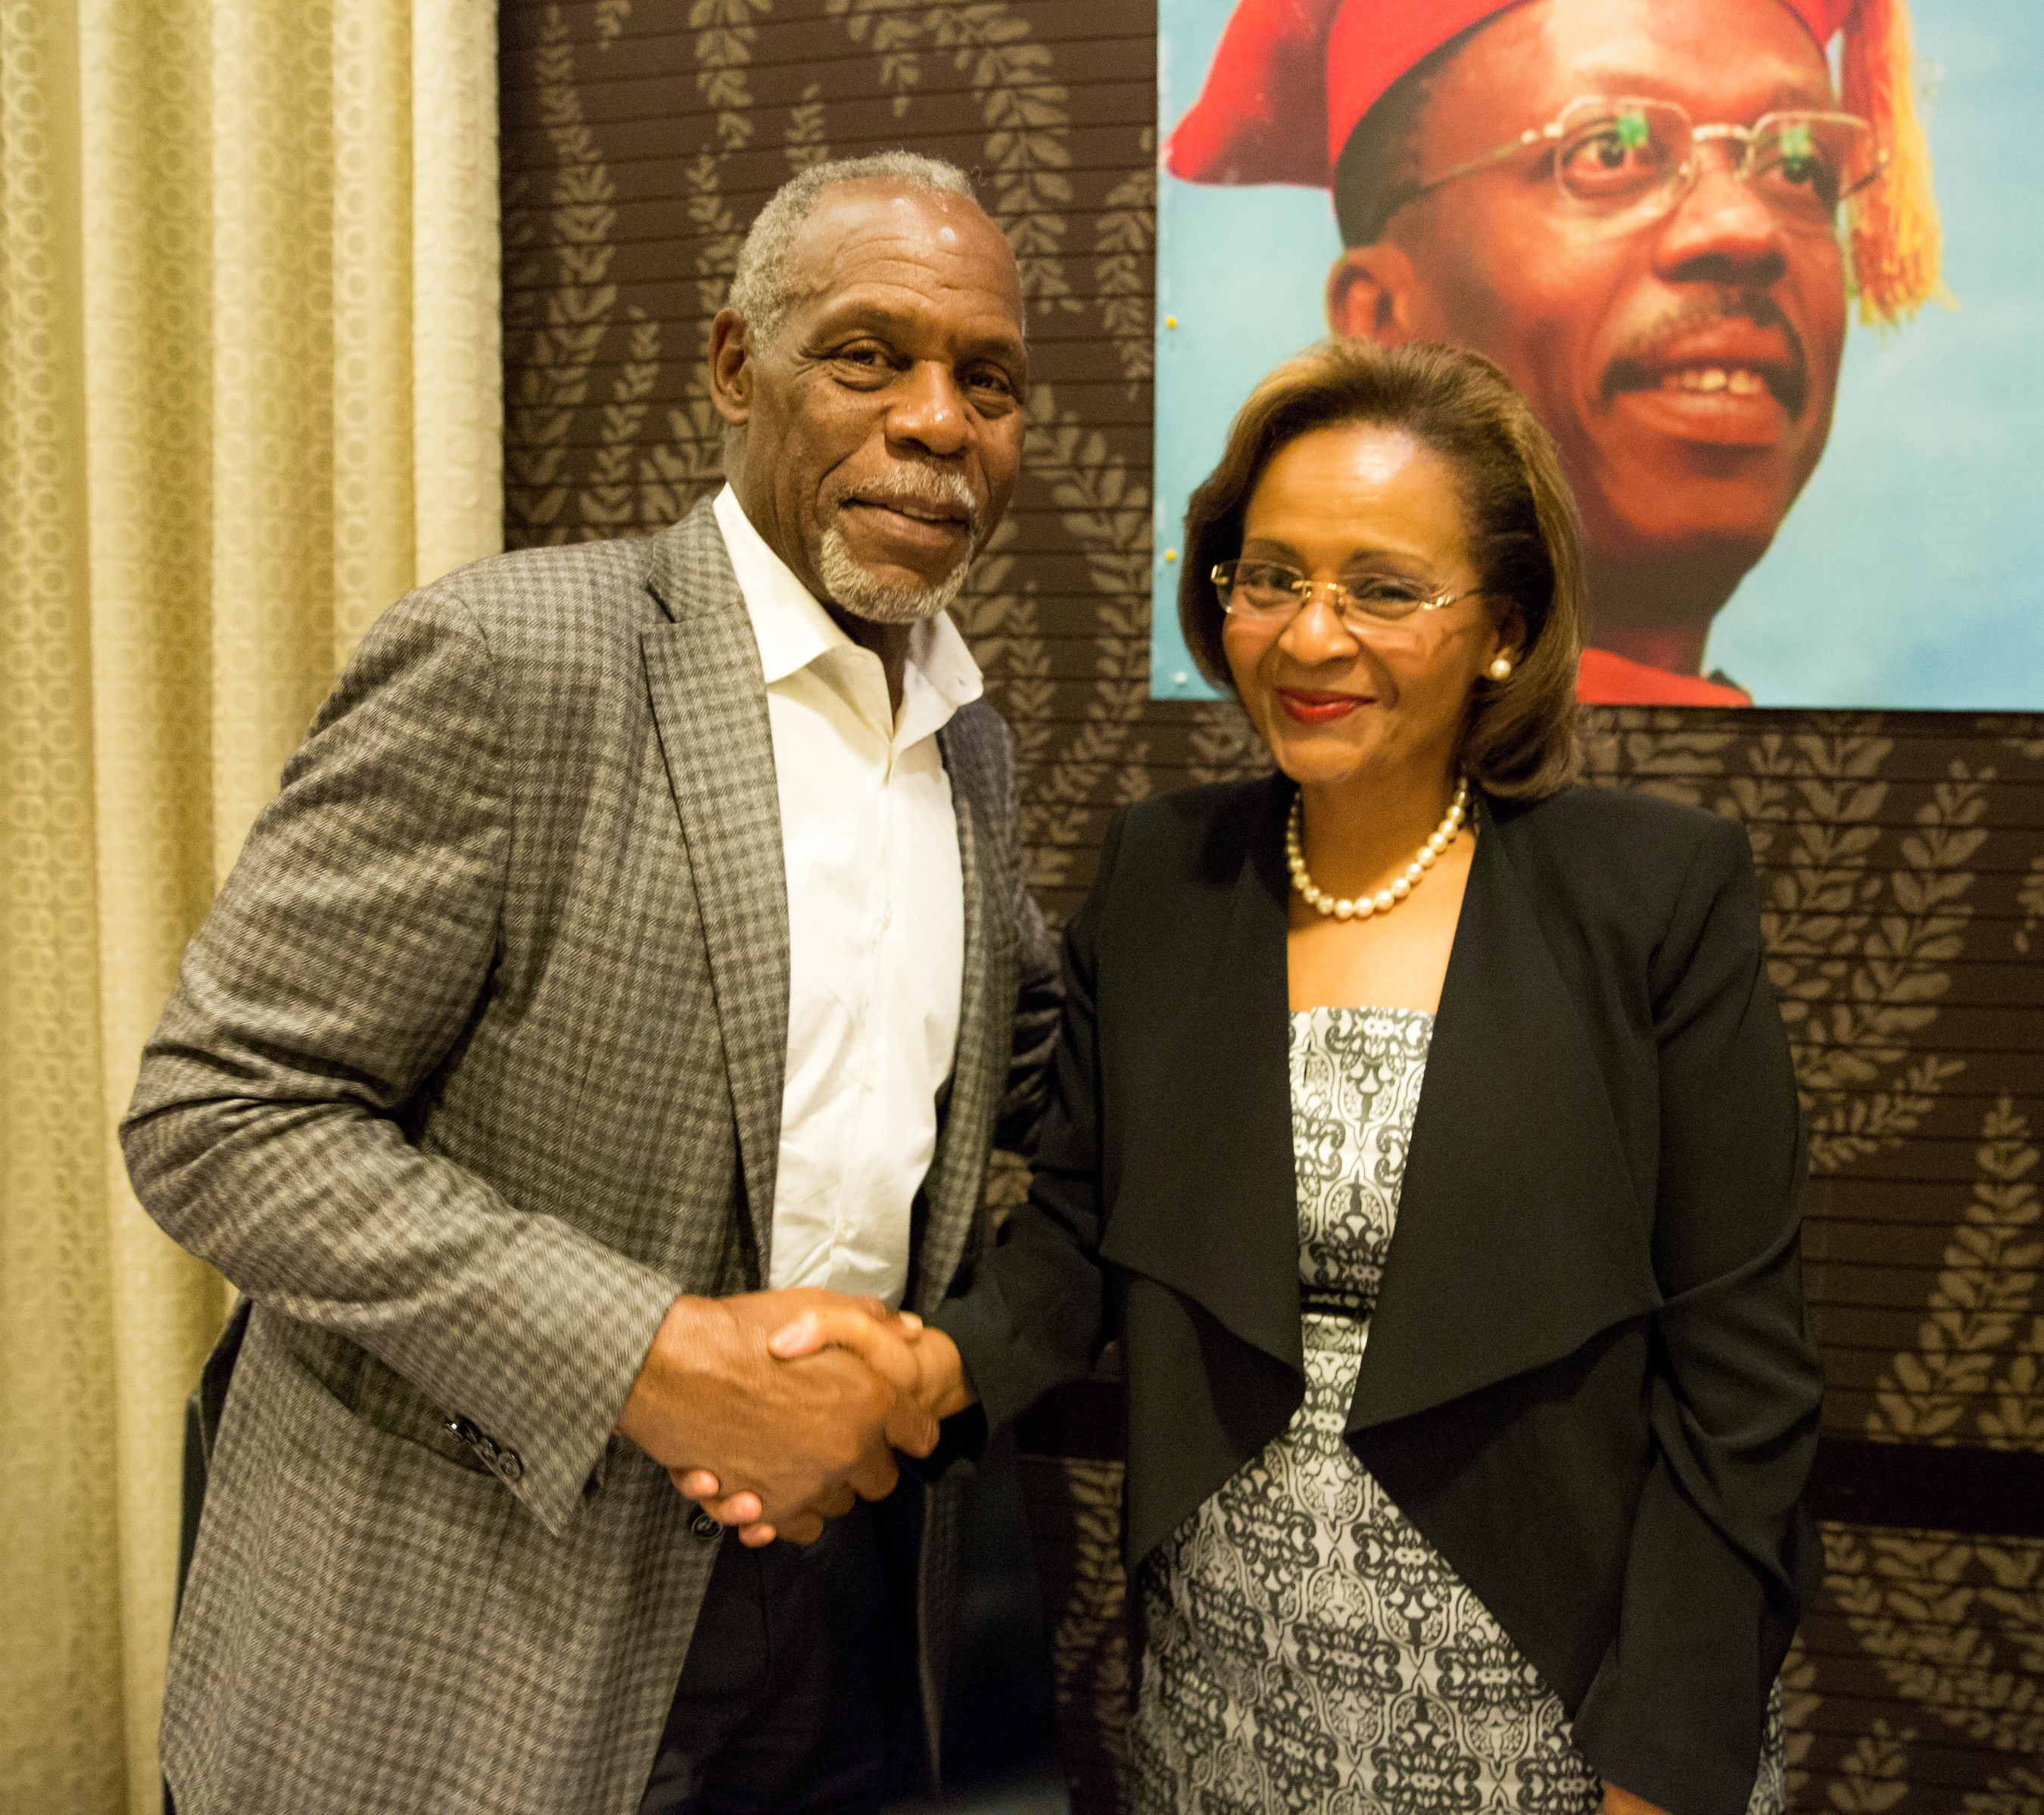 Hollywood Royalty Danny Glover Endorses Haiti's Presidential Campaign Front-Runner Dr. Maryse Narcisse at Private NYC Fundraiser on 9/11